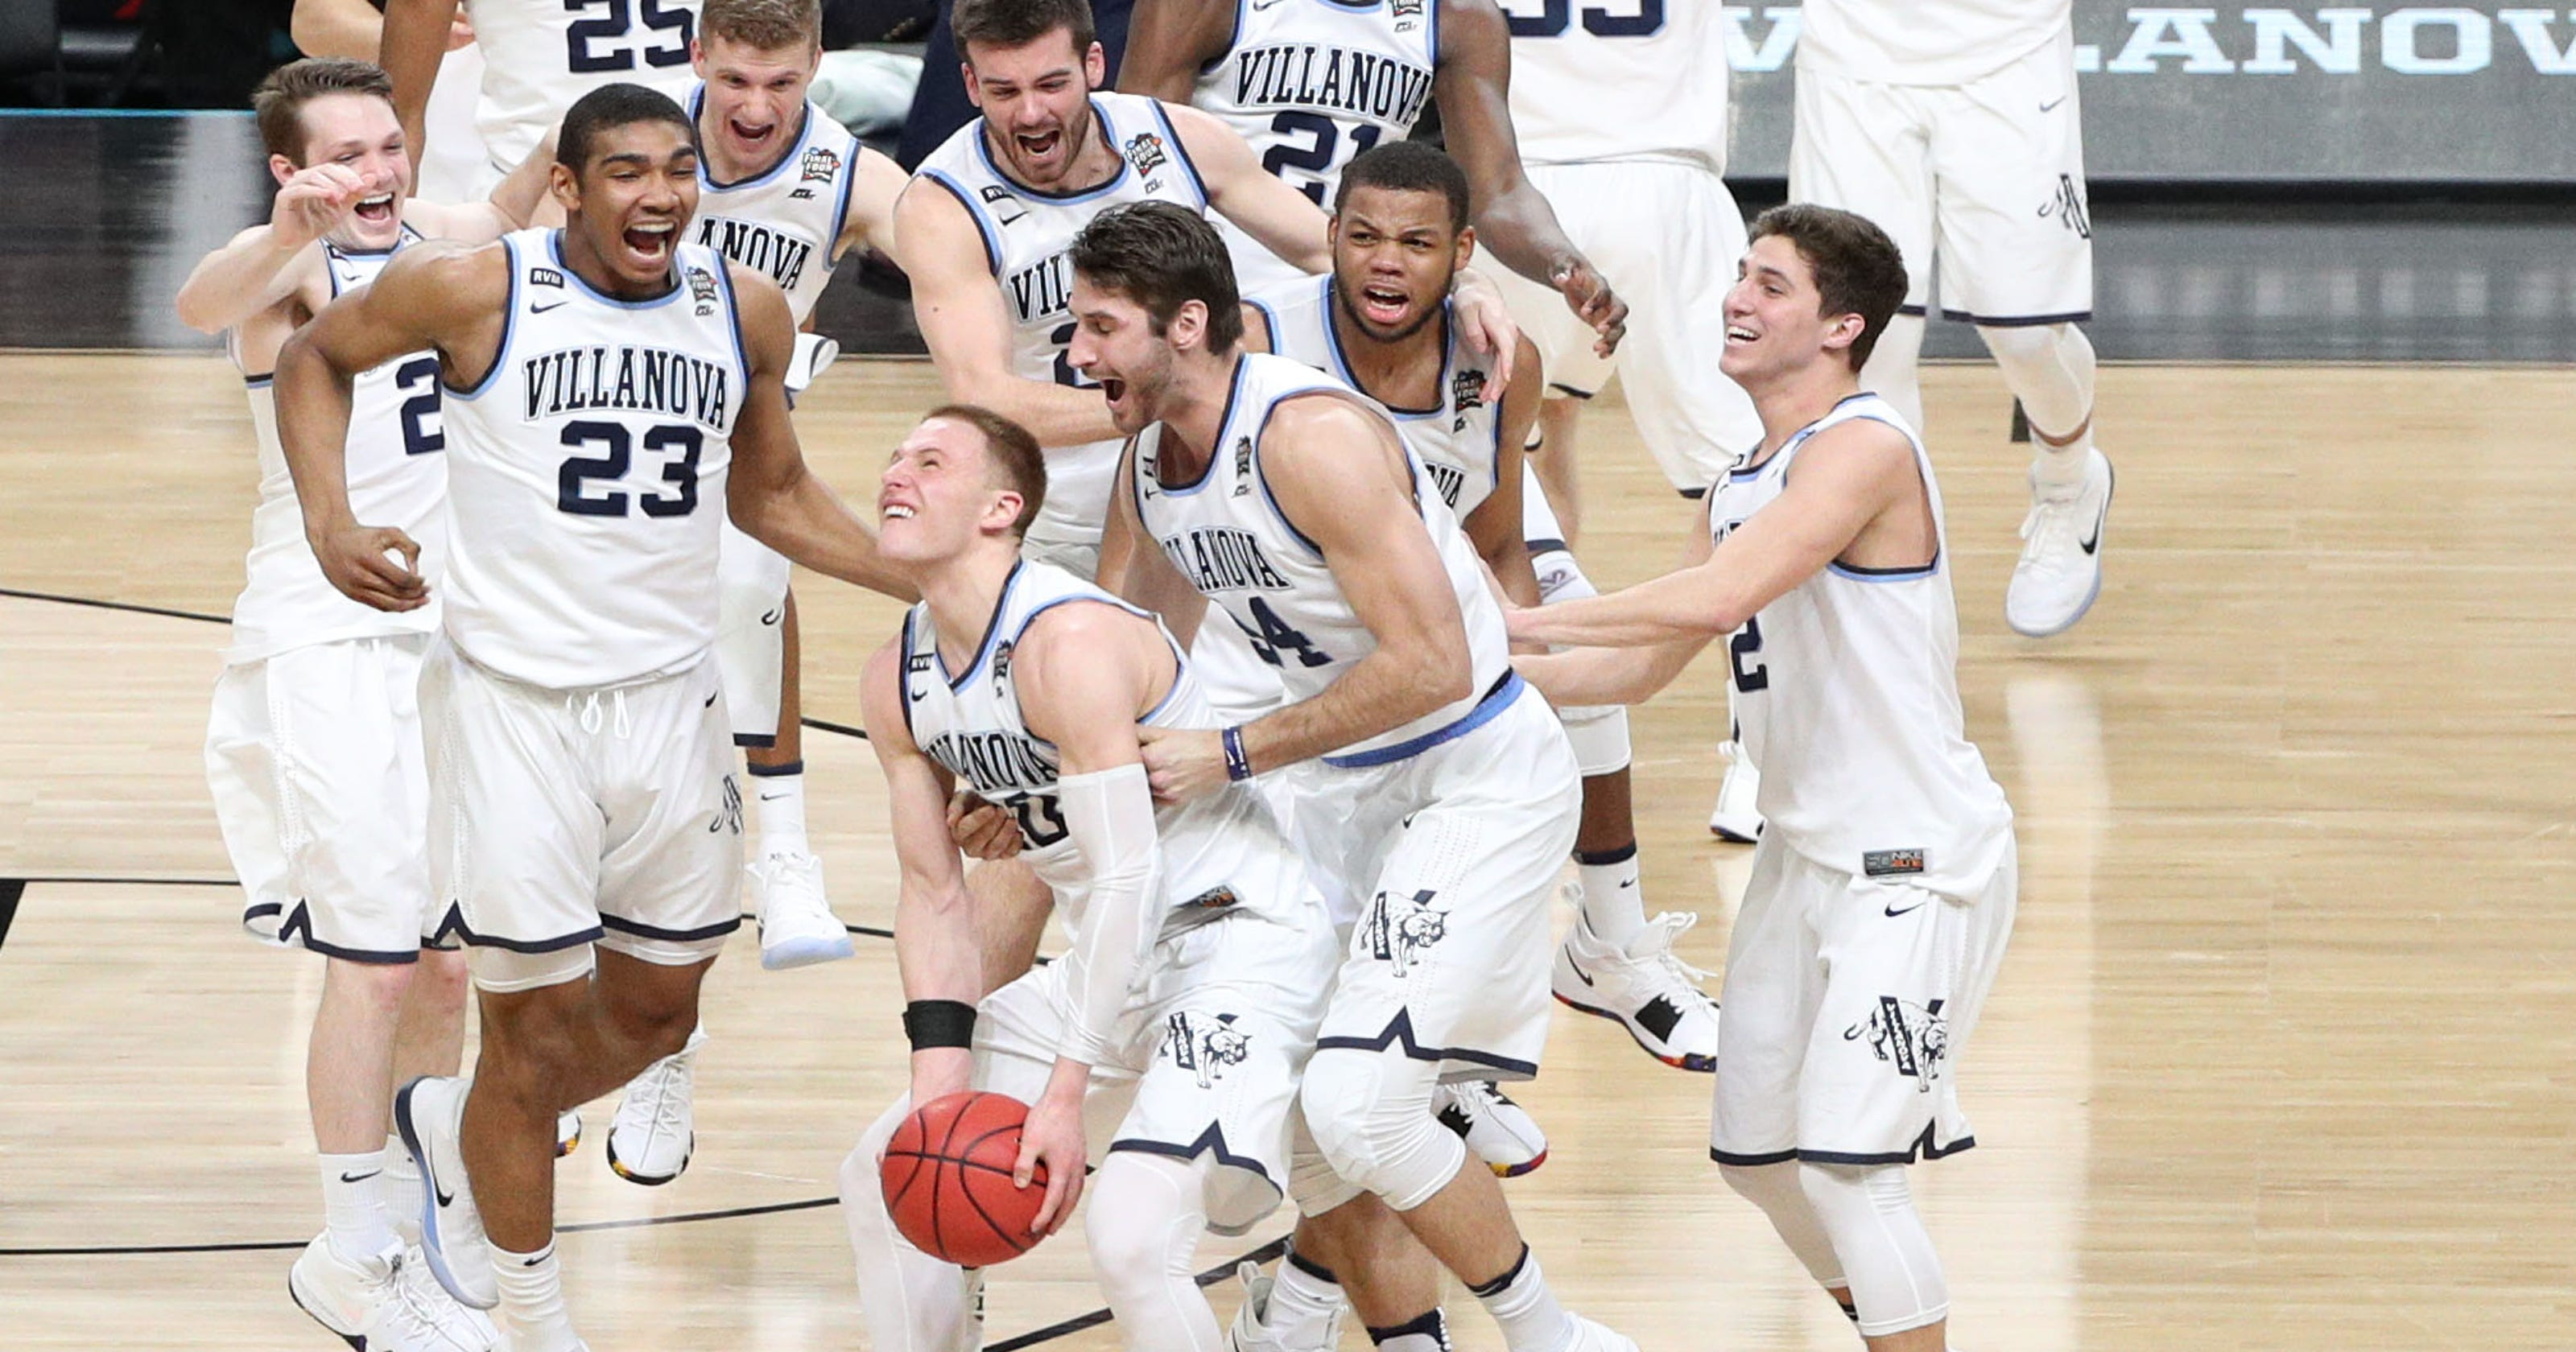 a4c20803093 National championship goes to dominant Villanova led by Donte DiVincenzo